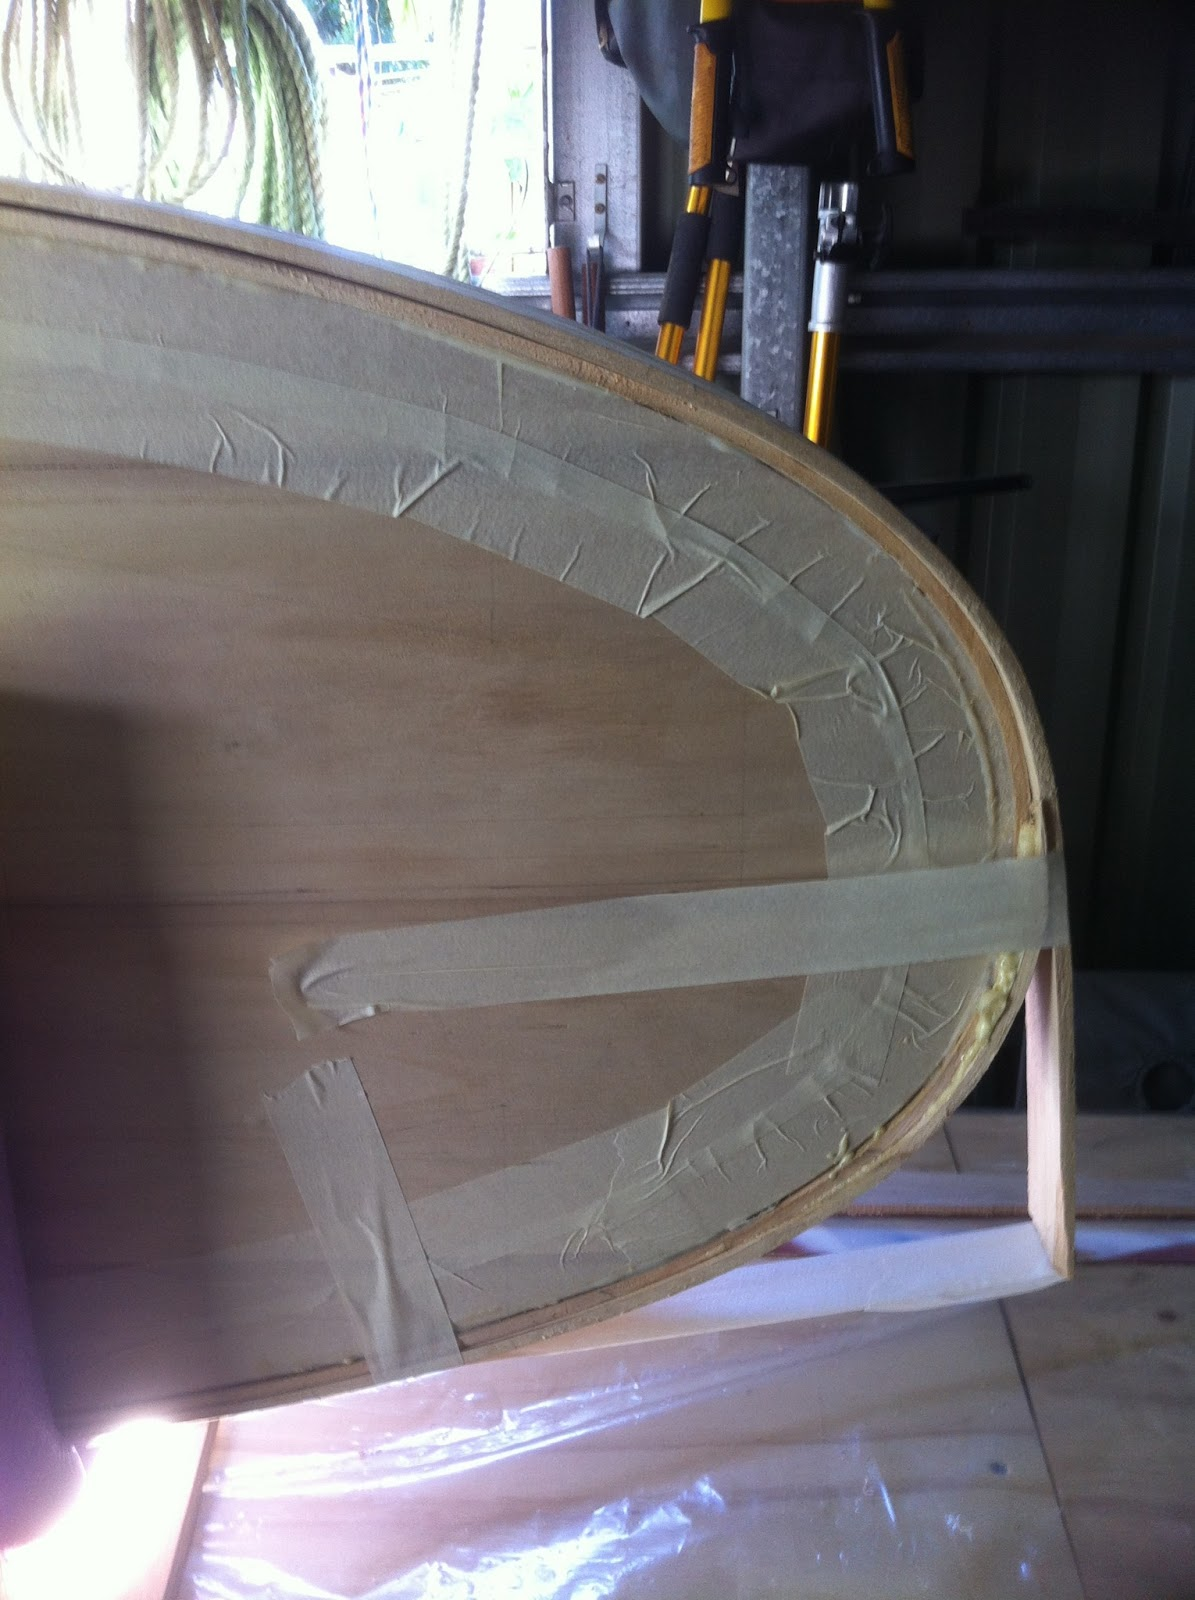 how to tell polyurethane from epoxy surf boards